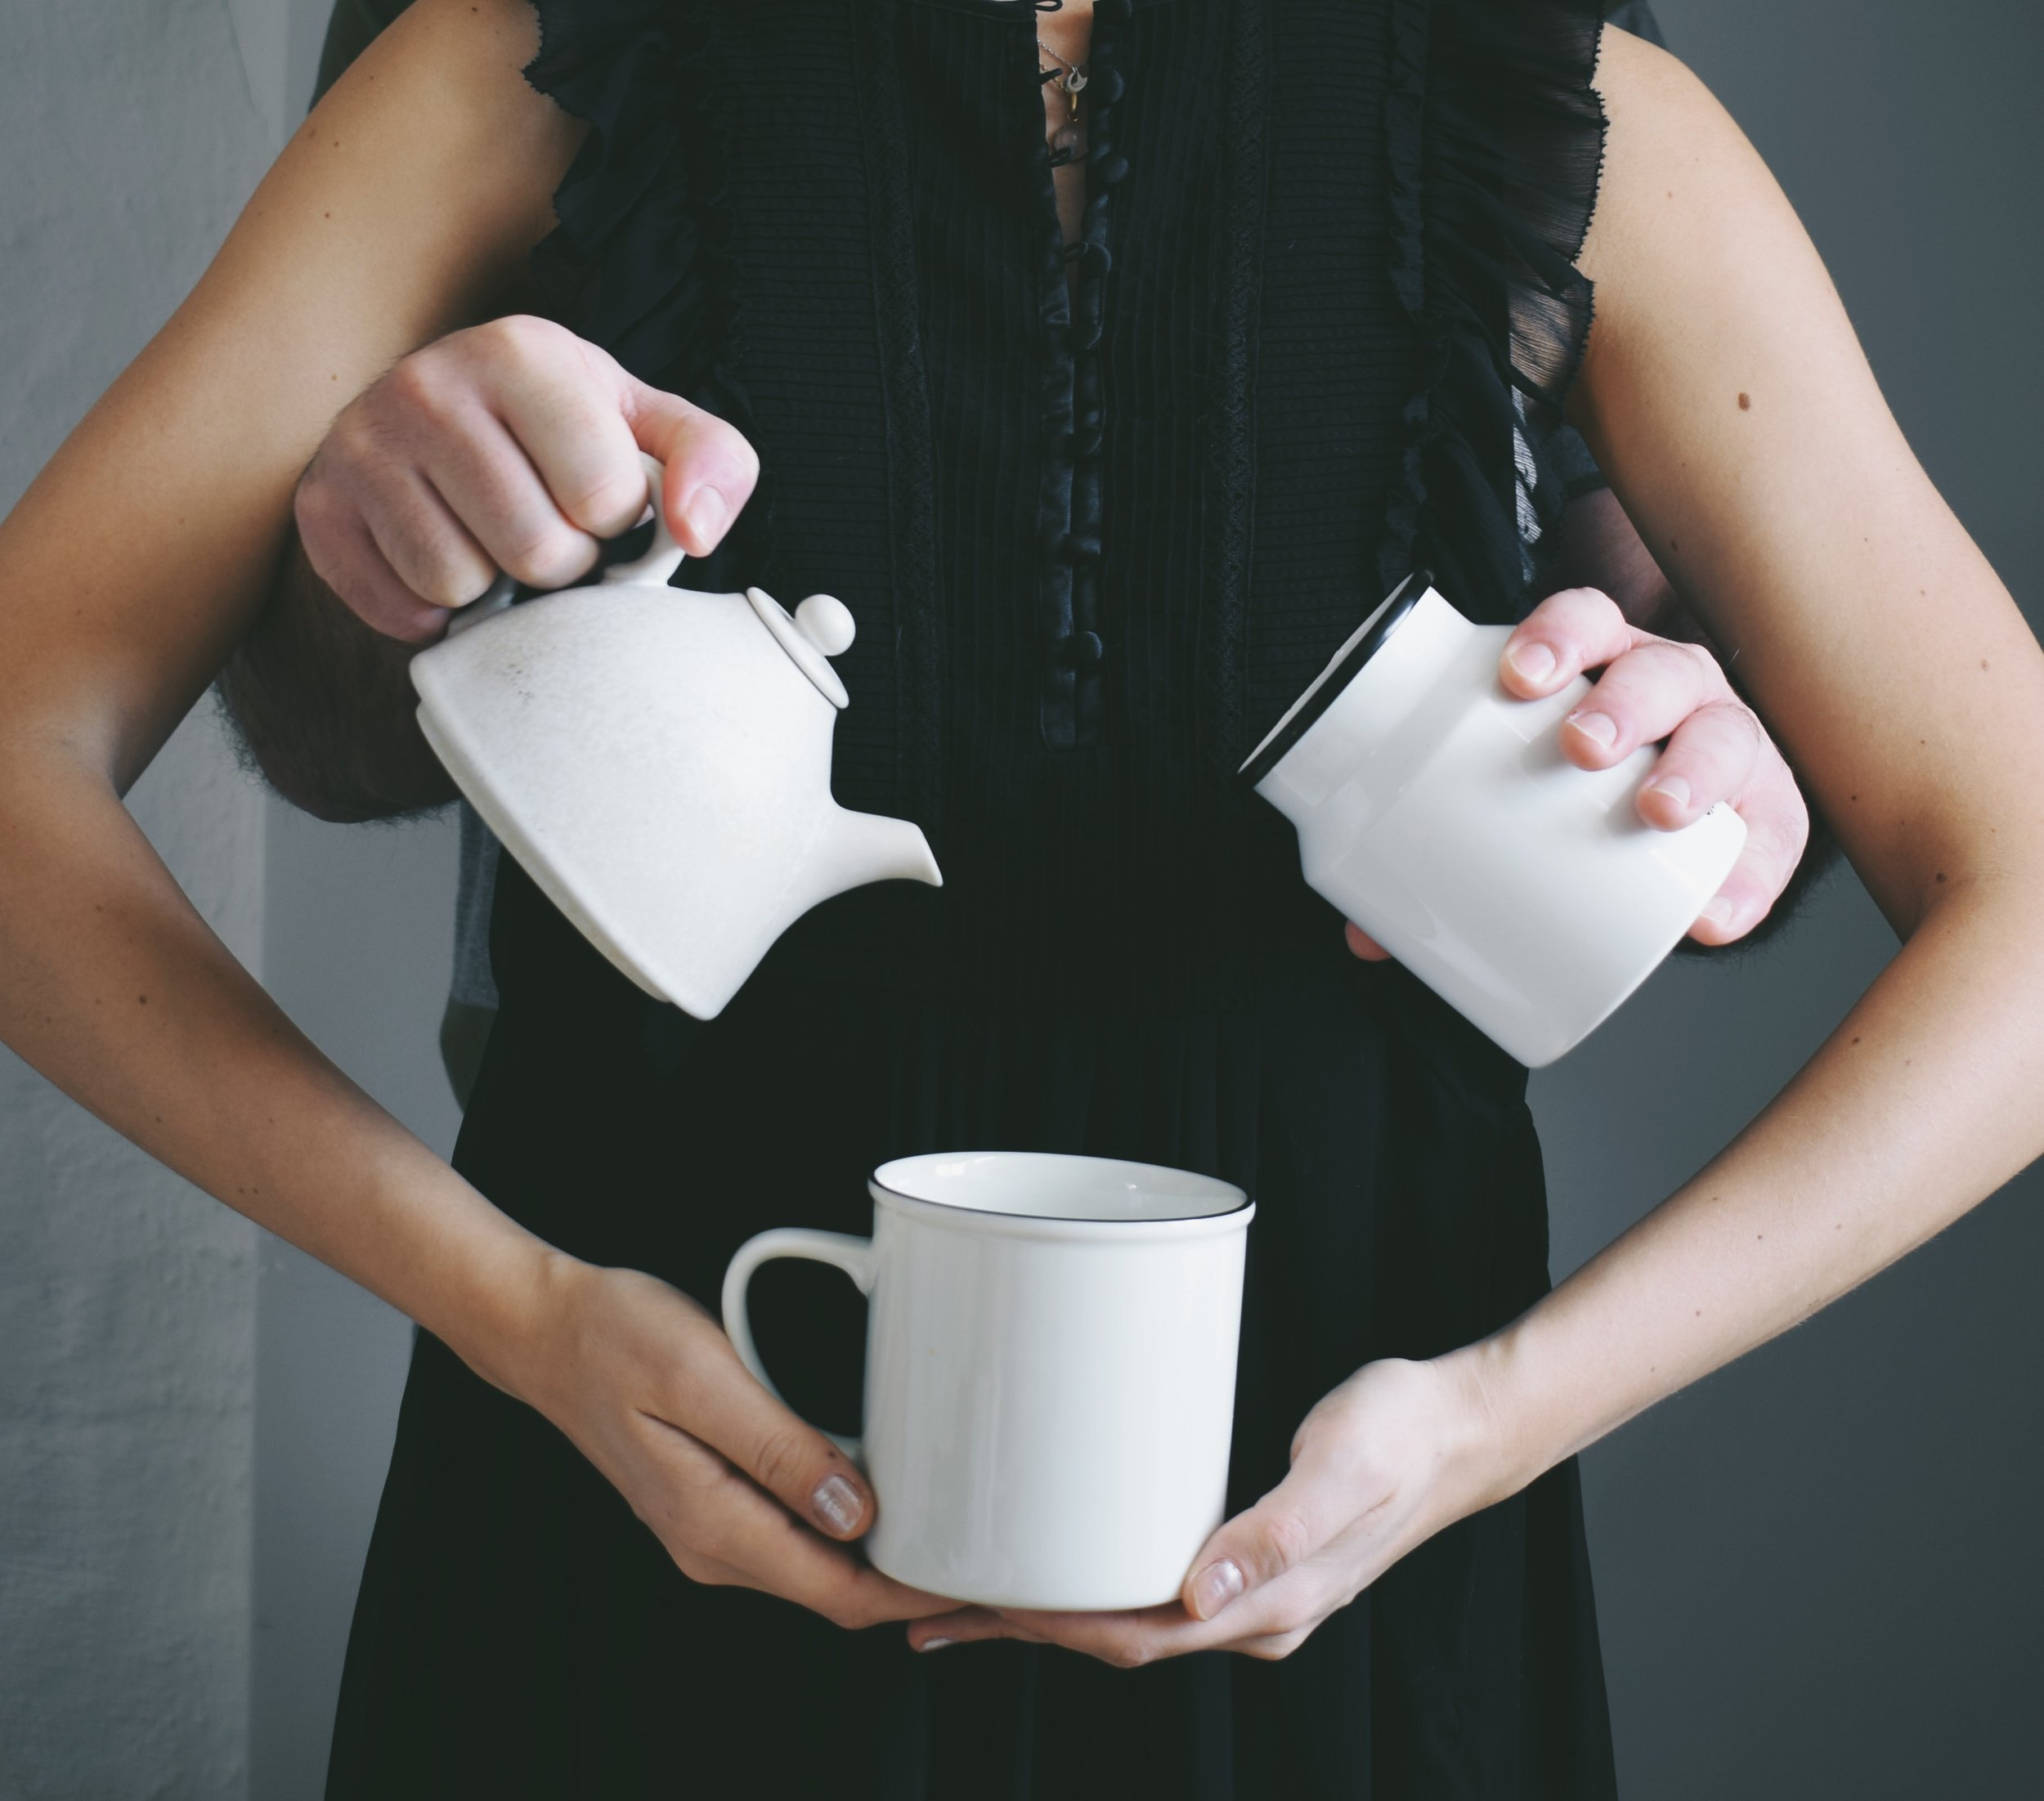 Yhings i'm excited about for Fall- Stronger relationship, poring coffee in my cup with a pair of extra hands